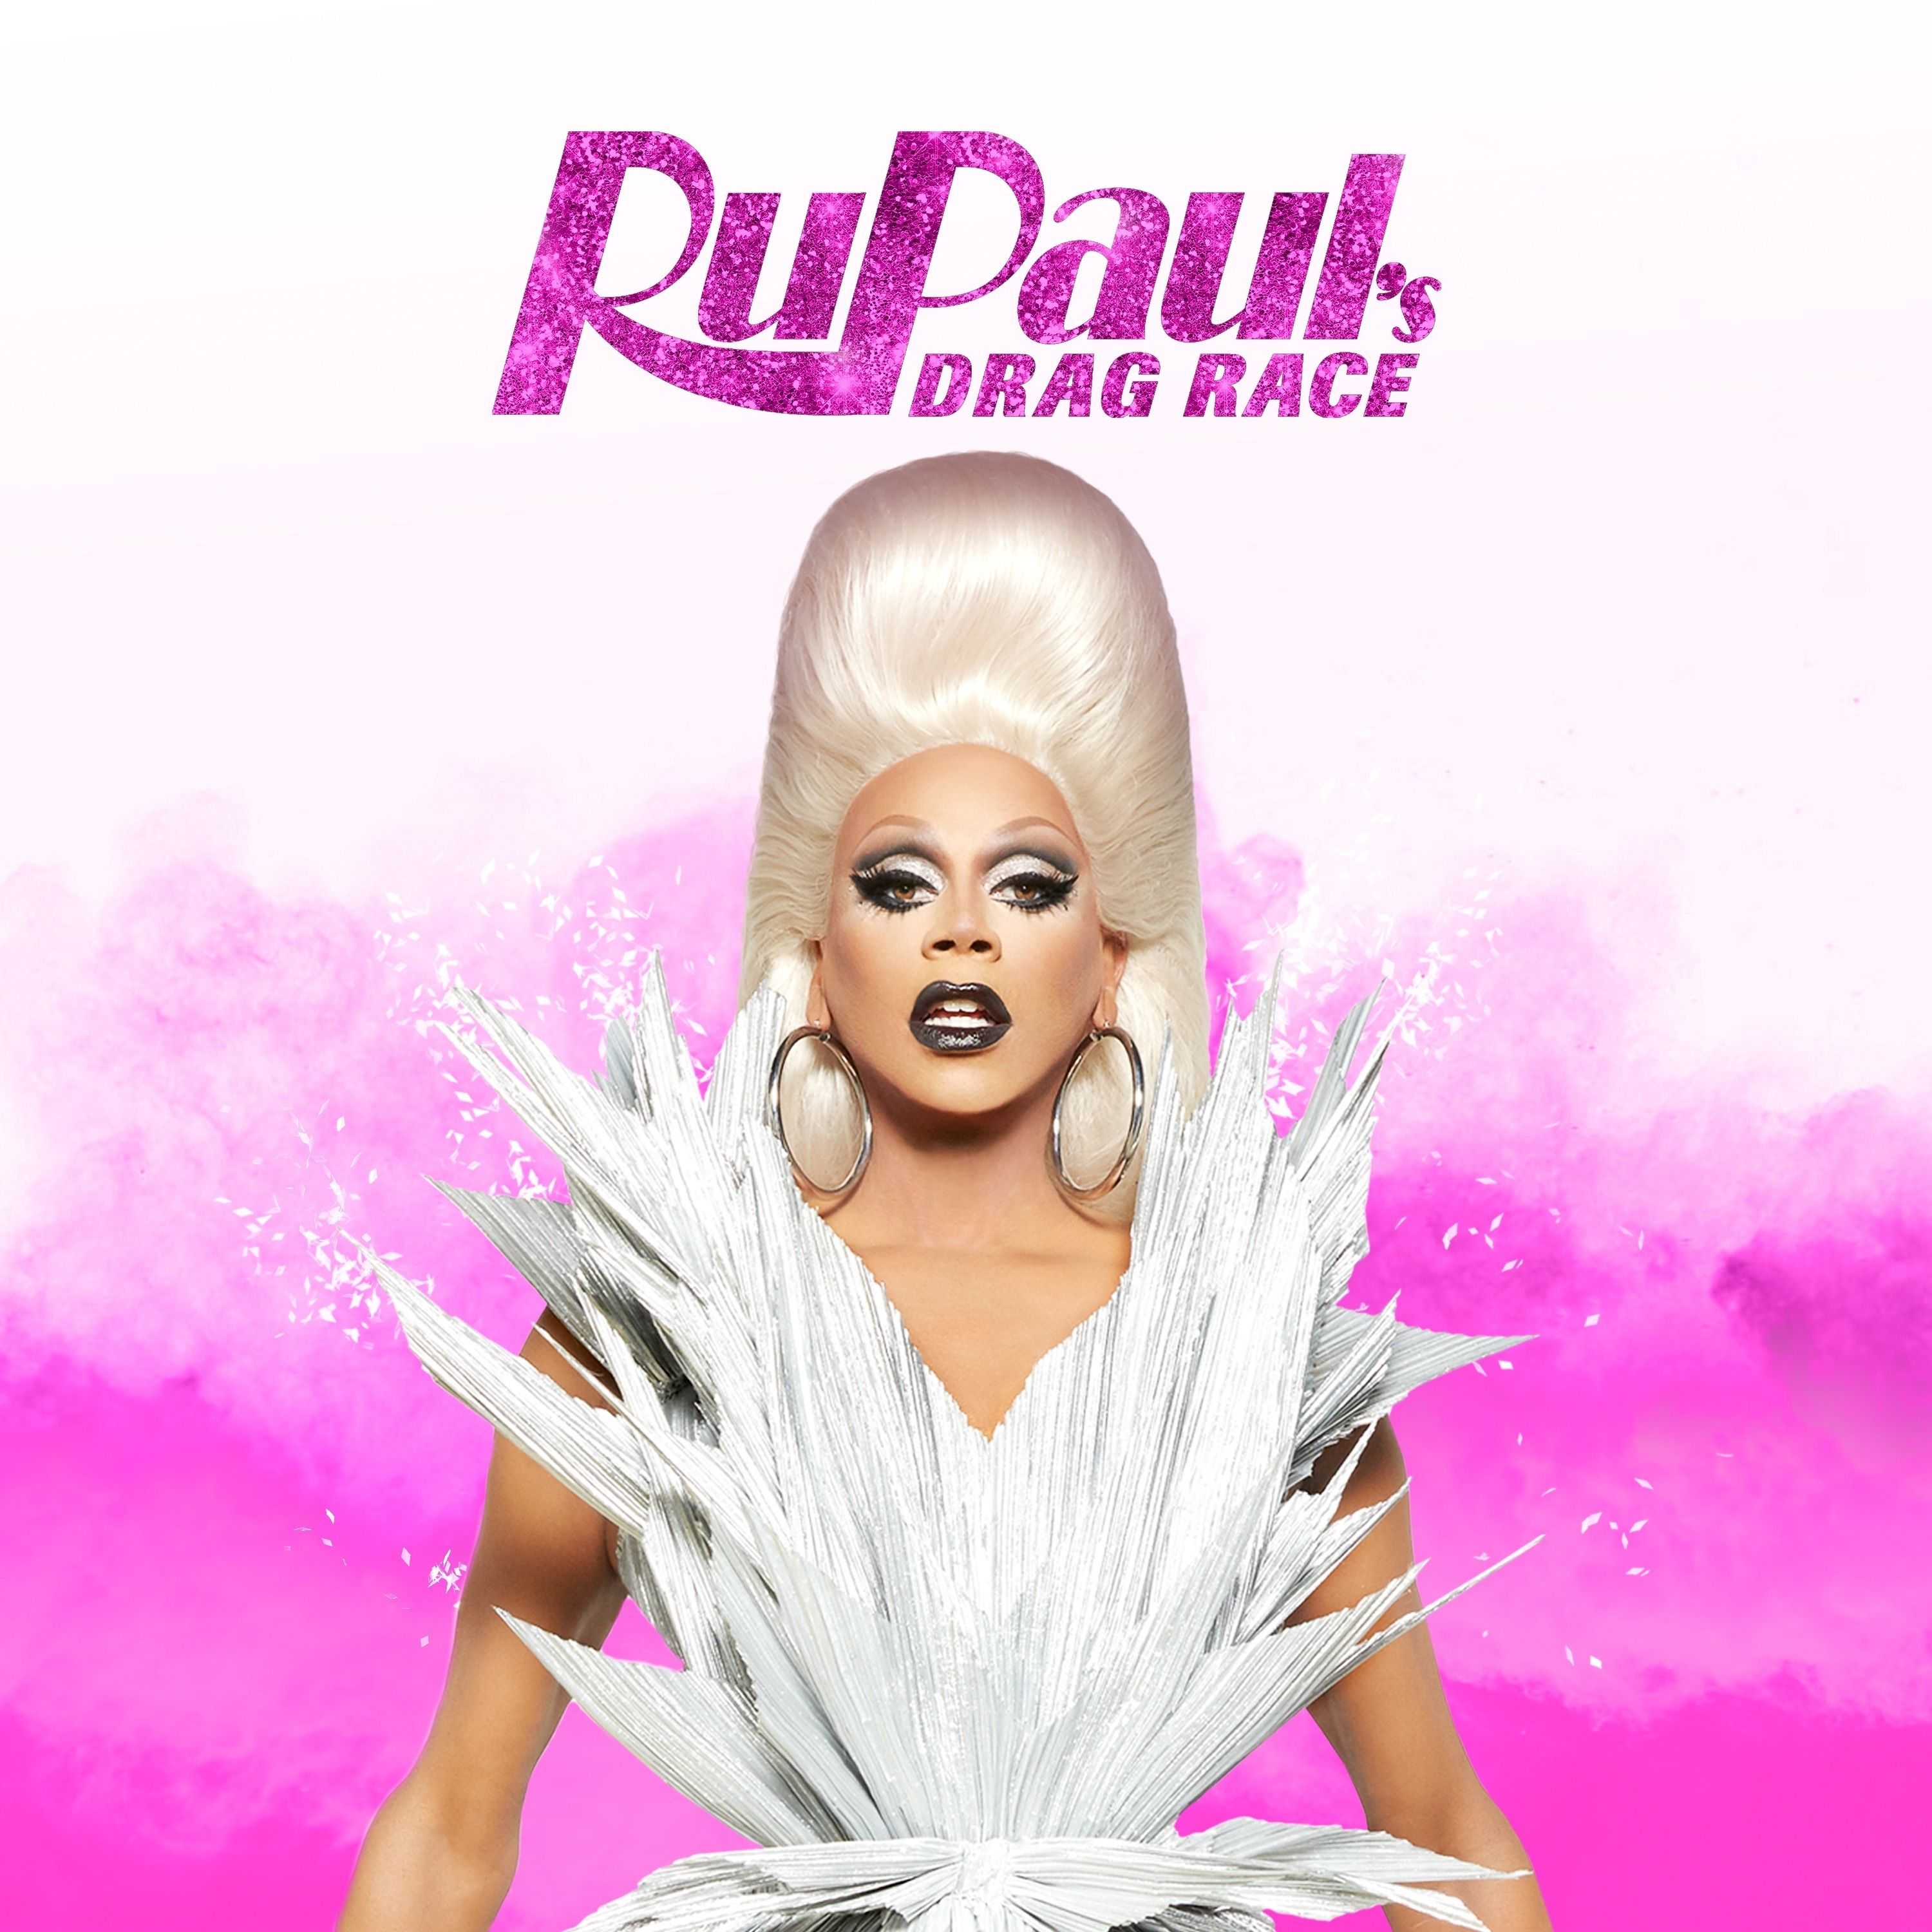 RuPaul's Drag Race (Season 9)